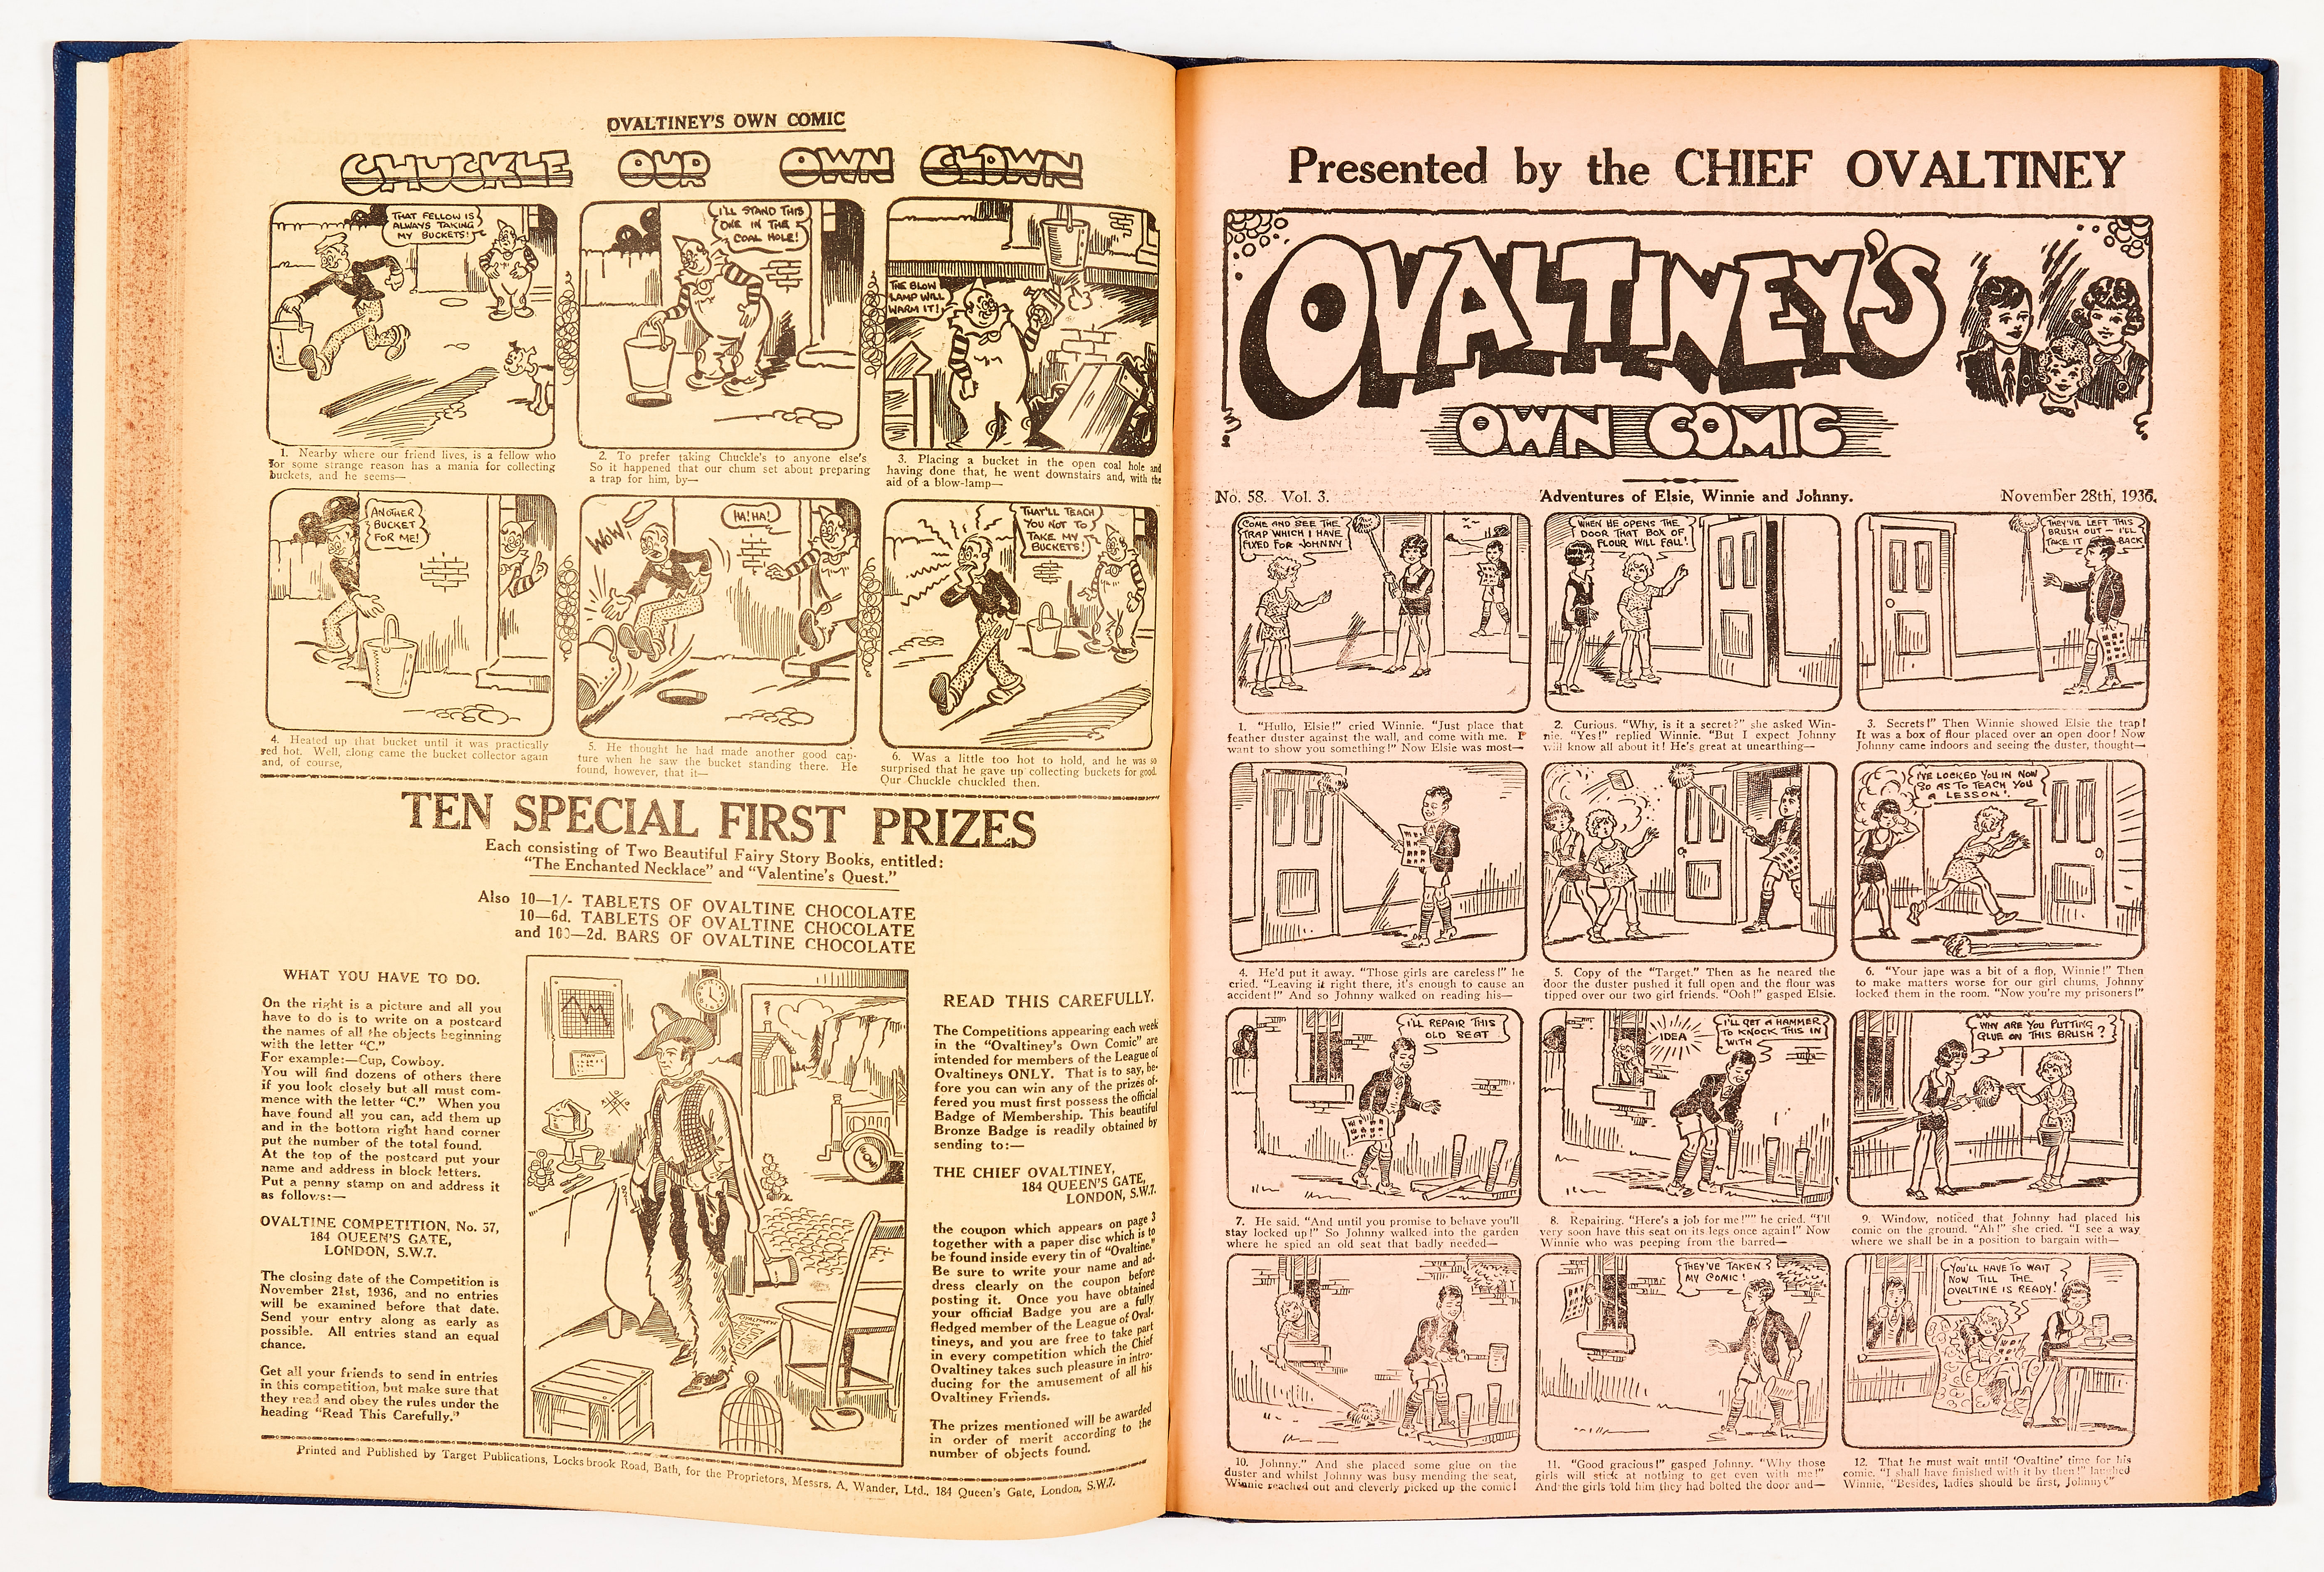 Ovaltiney's Own Comic (1935-38) 1-128 in bound volume. Produced in conjunction with The Ovaltine